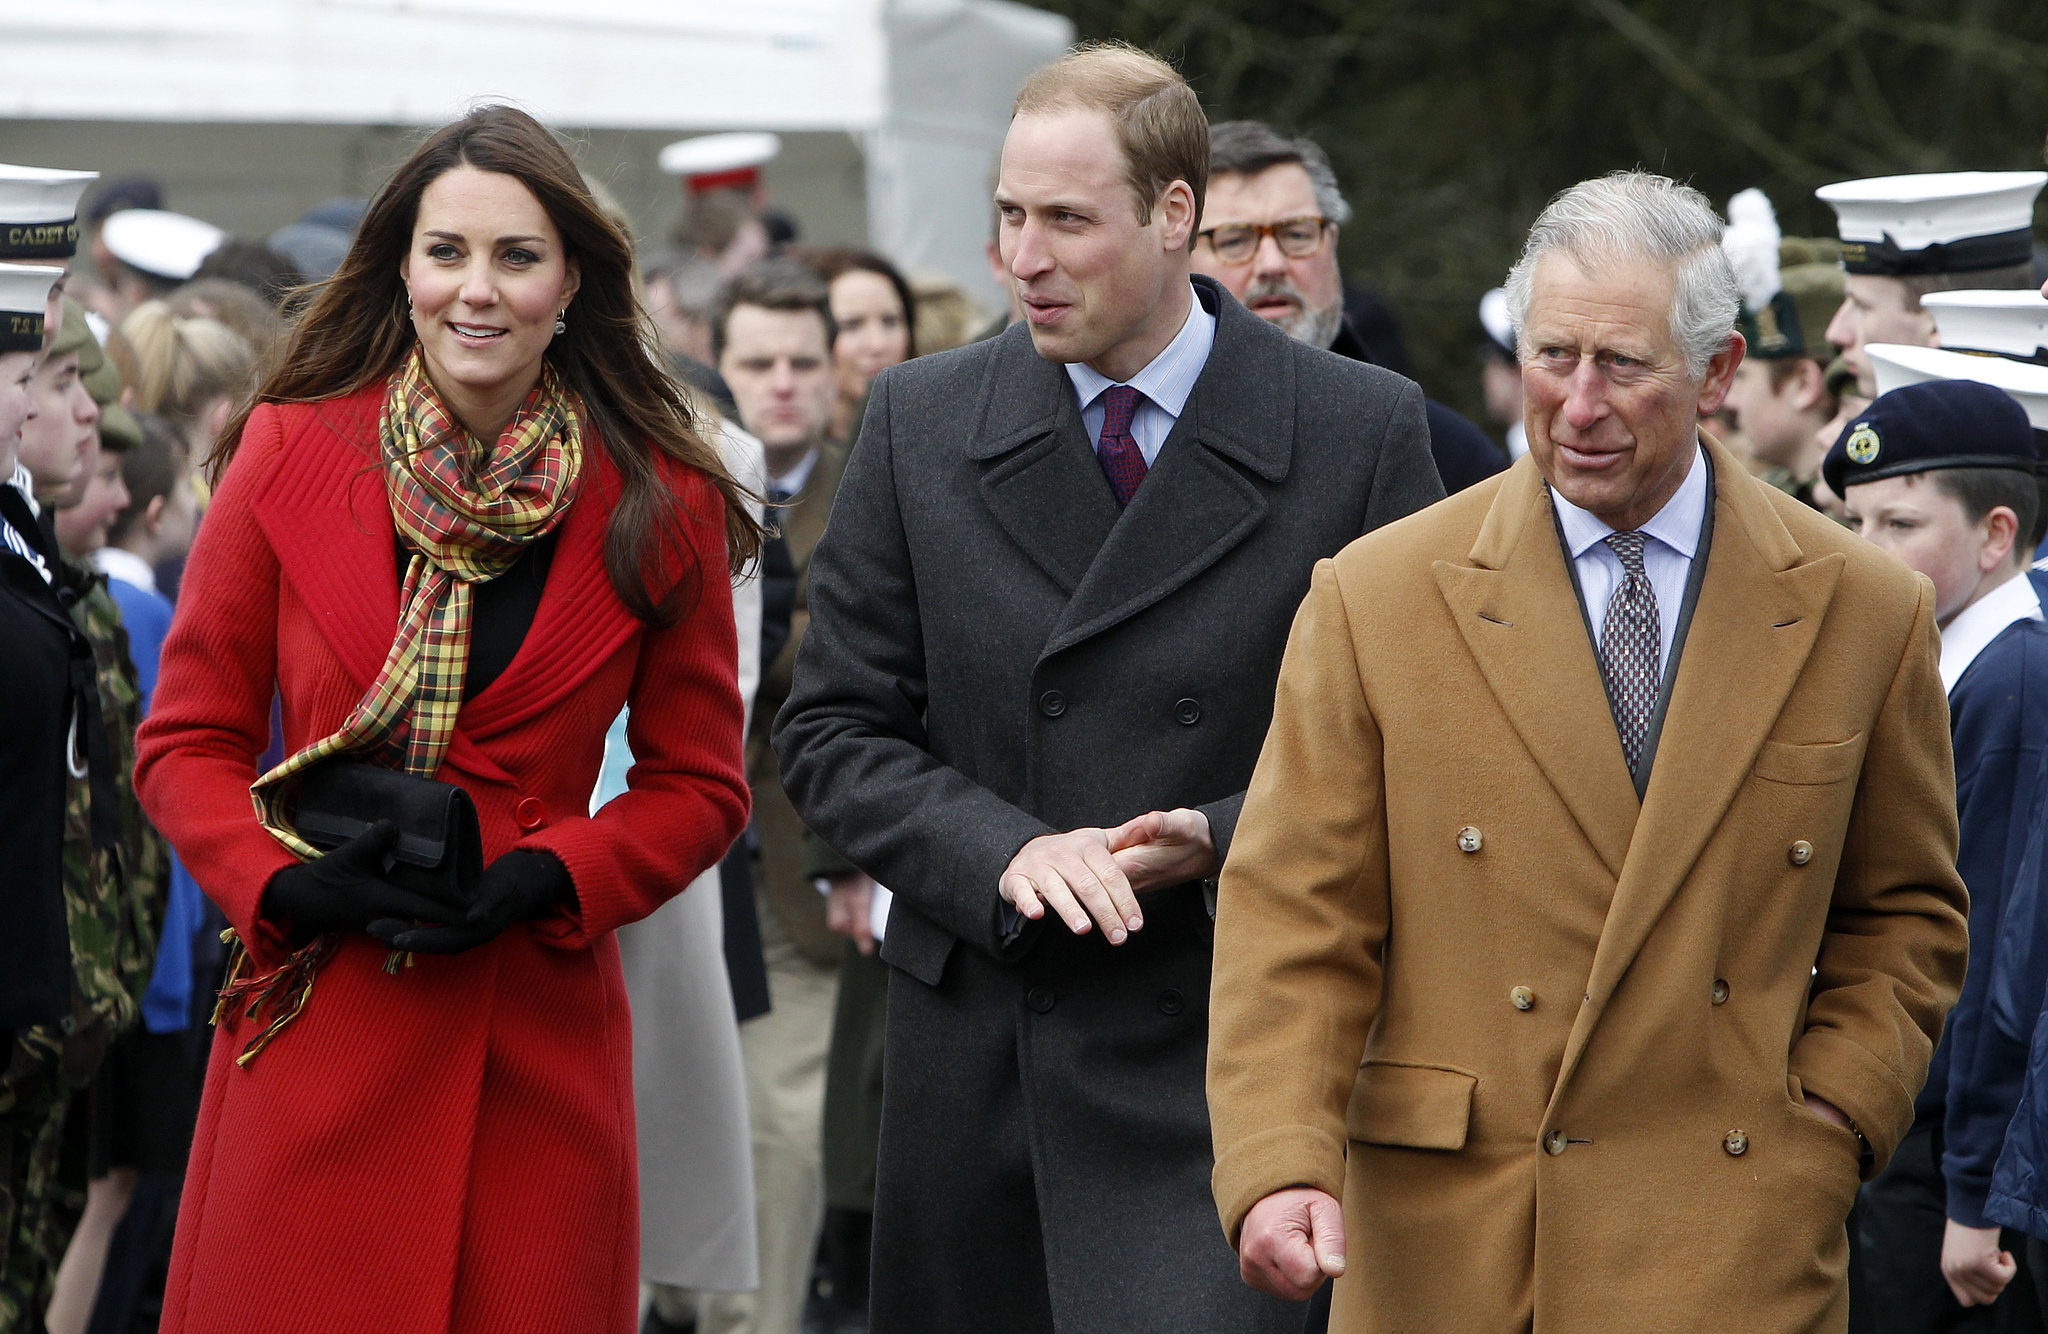 On April 5 2013 Kate Joined William And Prince Charles